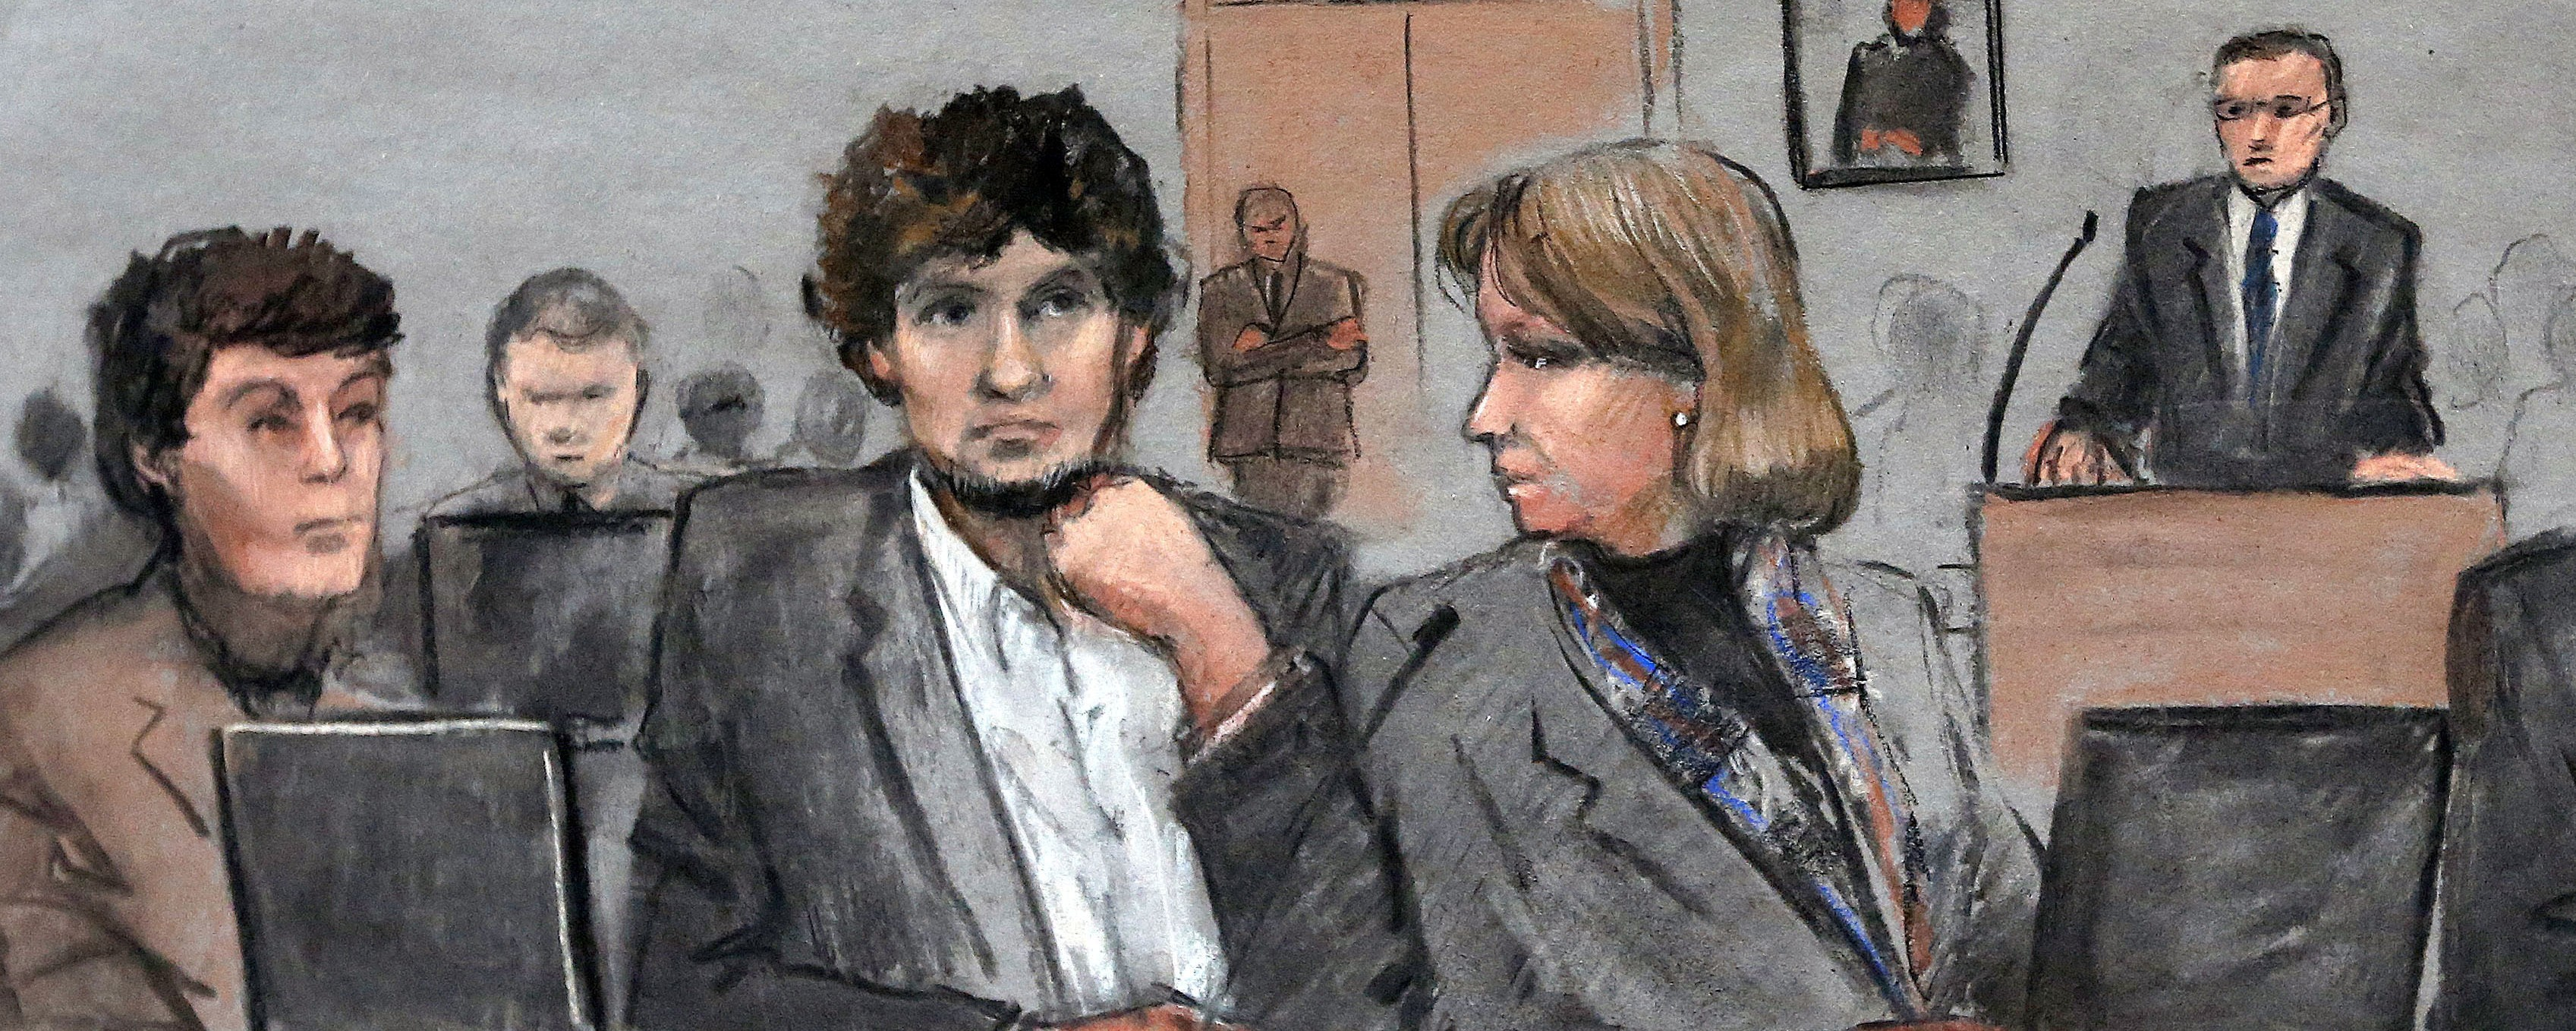 Dzhokhar Tsarnaev Breaks Silence in Court Before Judge Sentences Him to Death